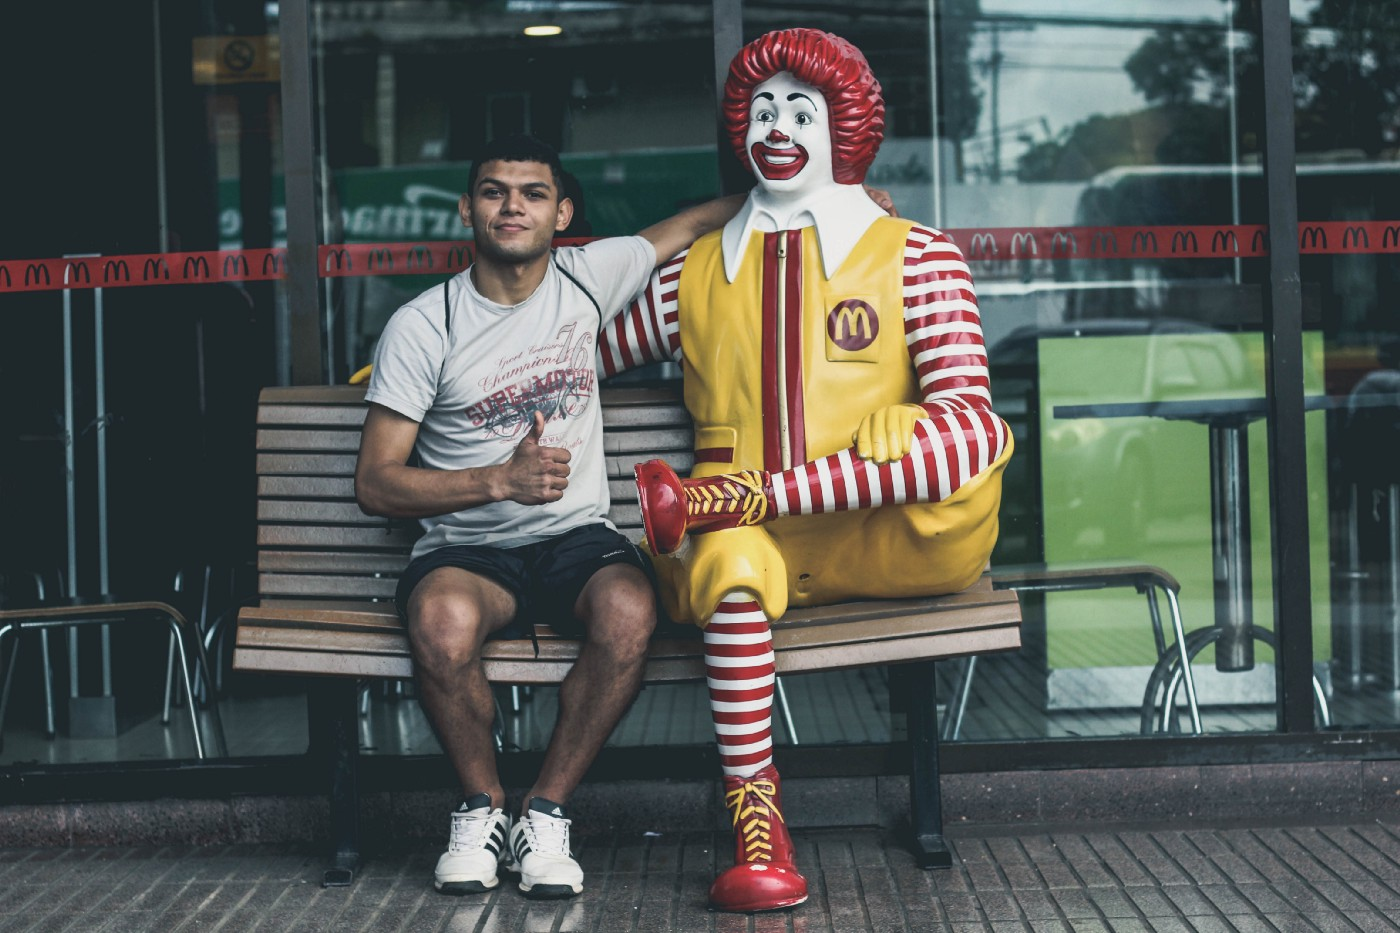 Young man sitting on a bench with Ronald McDonald